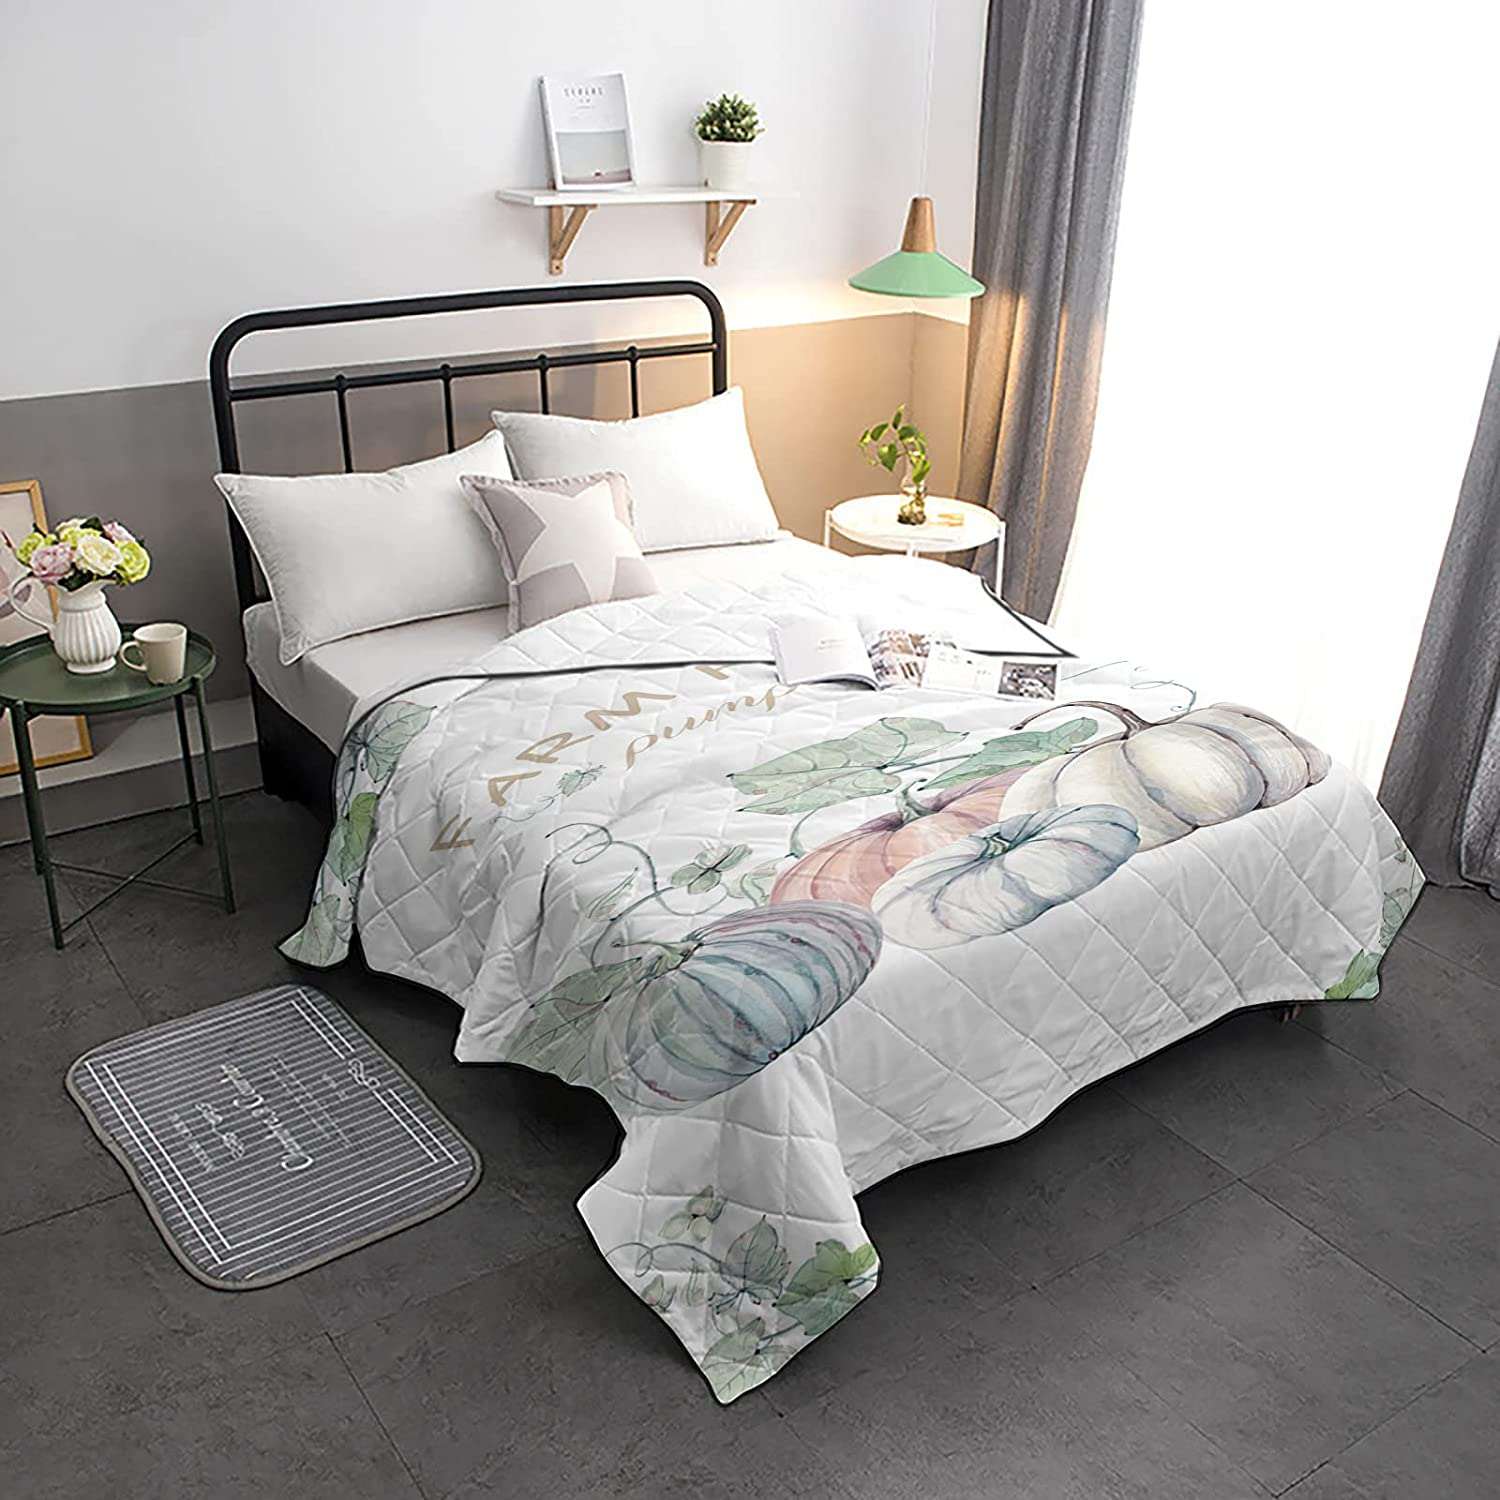 Bedding Fashion Comforter Duvet Twin Comf Size-Soft Lighweight Quilted Inventory cleanup selling sale